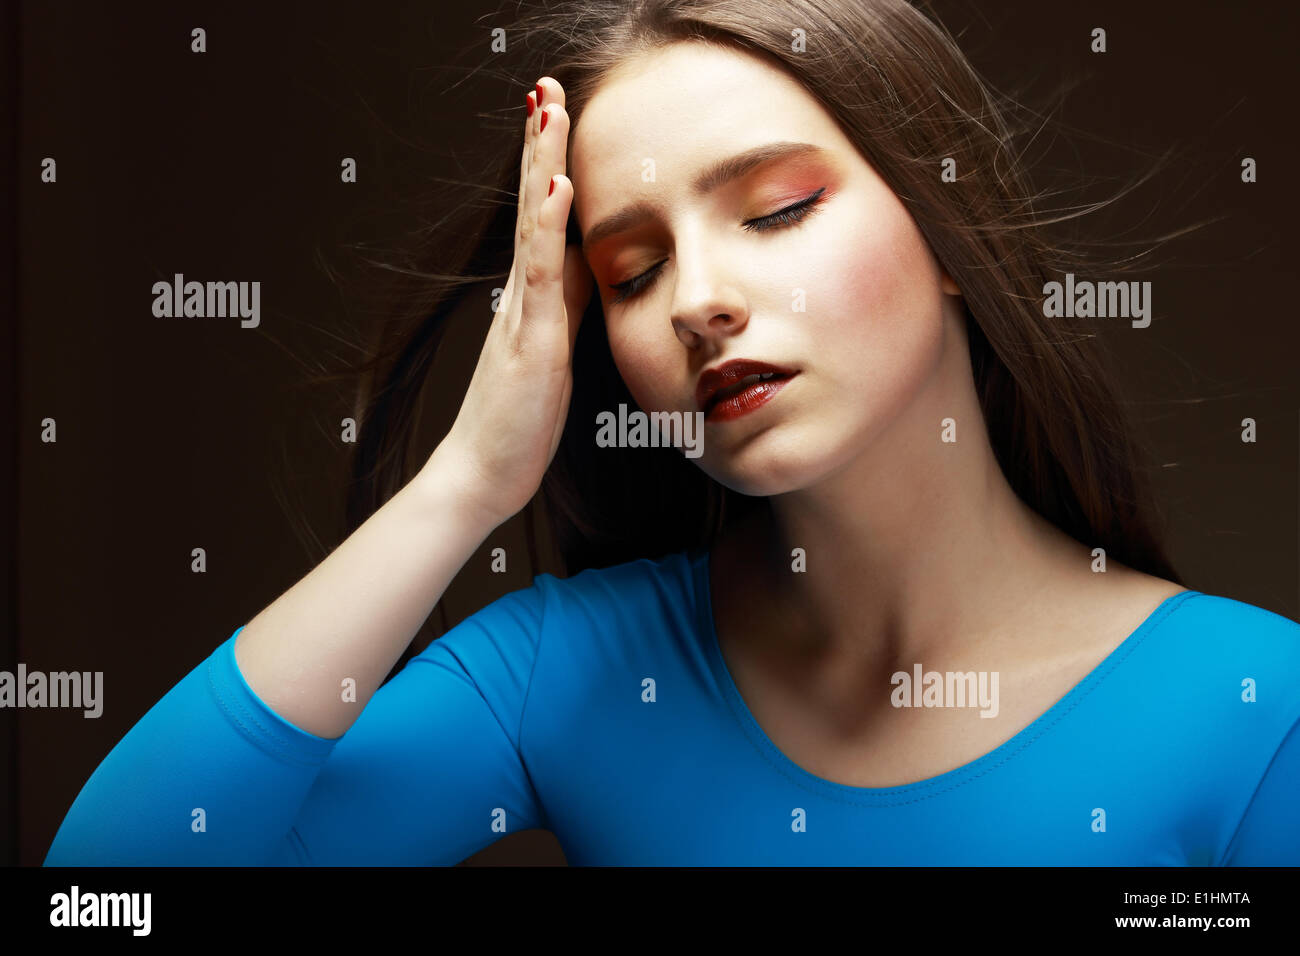 Distress. Woe. Upset Tired Woman Touching her Forehead. Difficulties - Stock Image